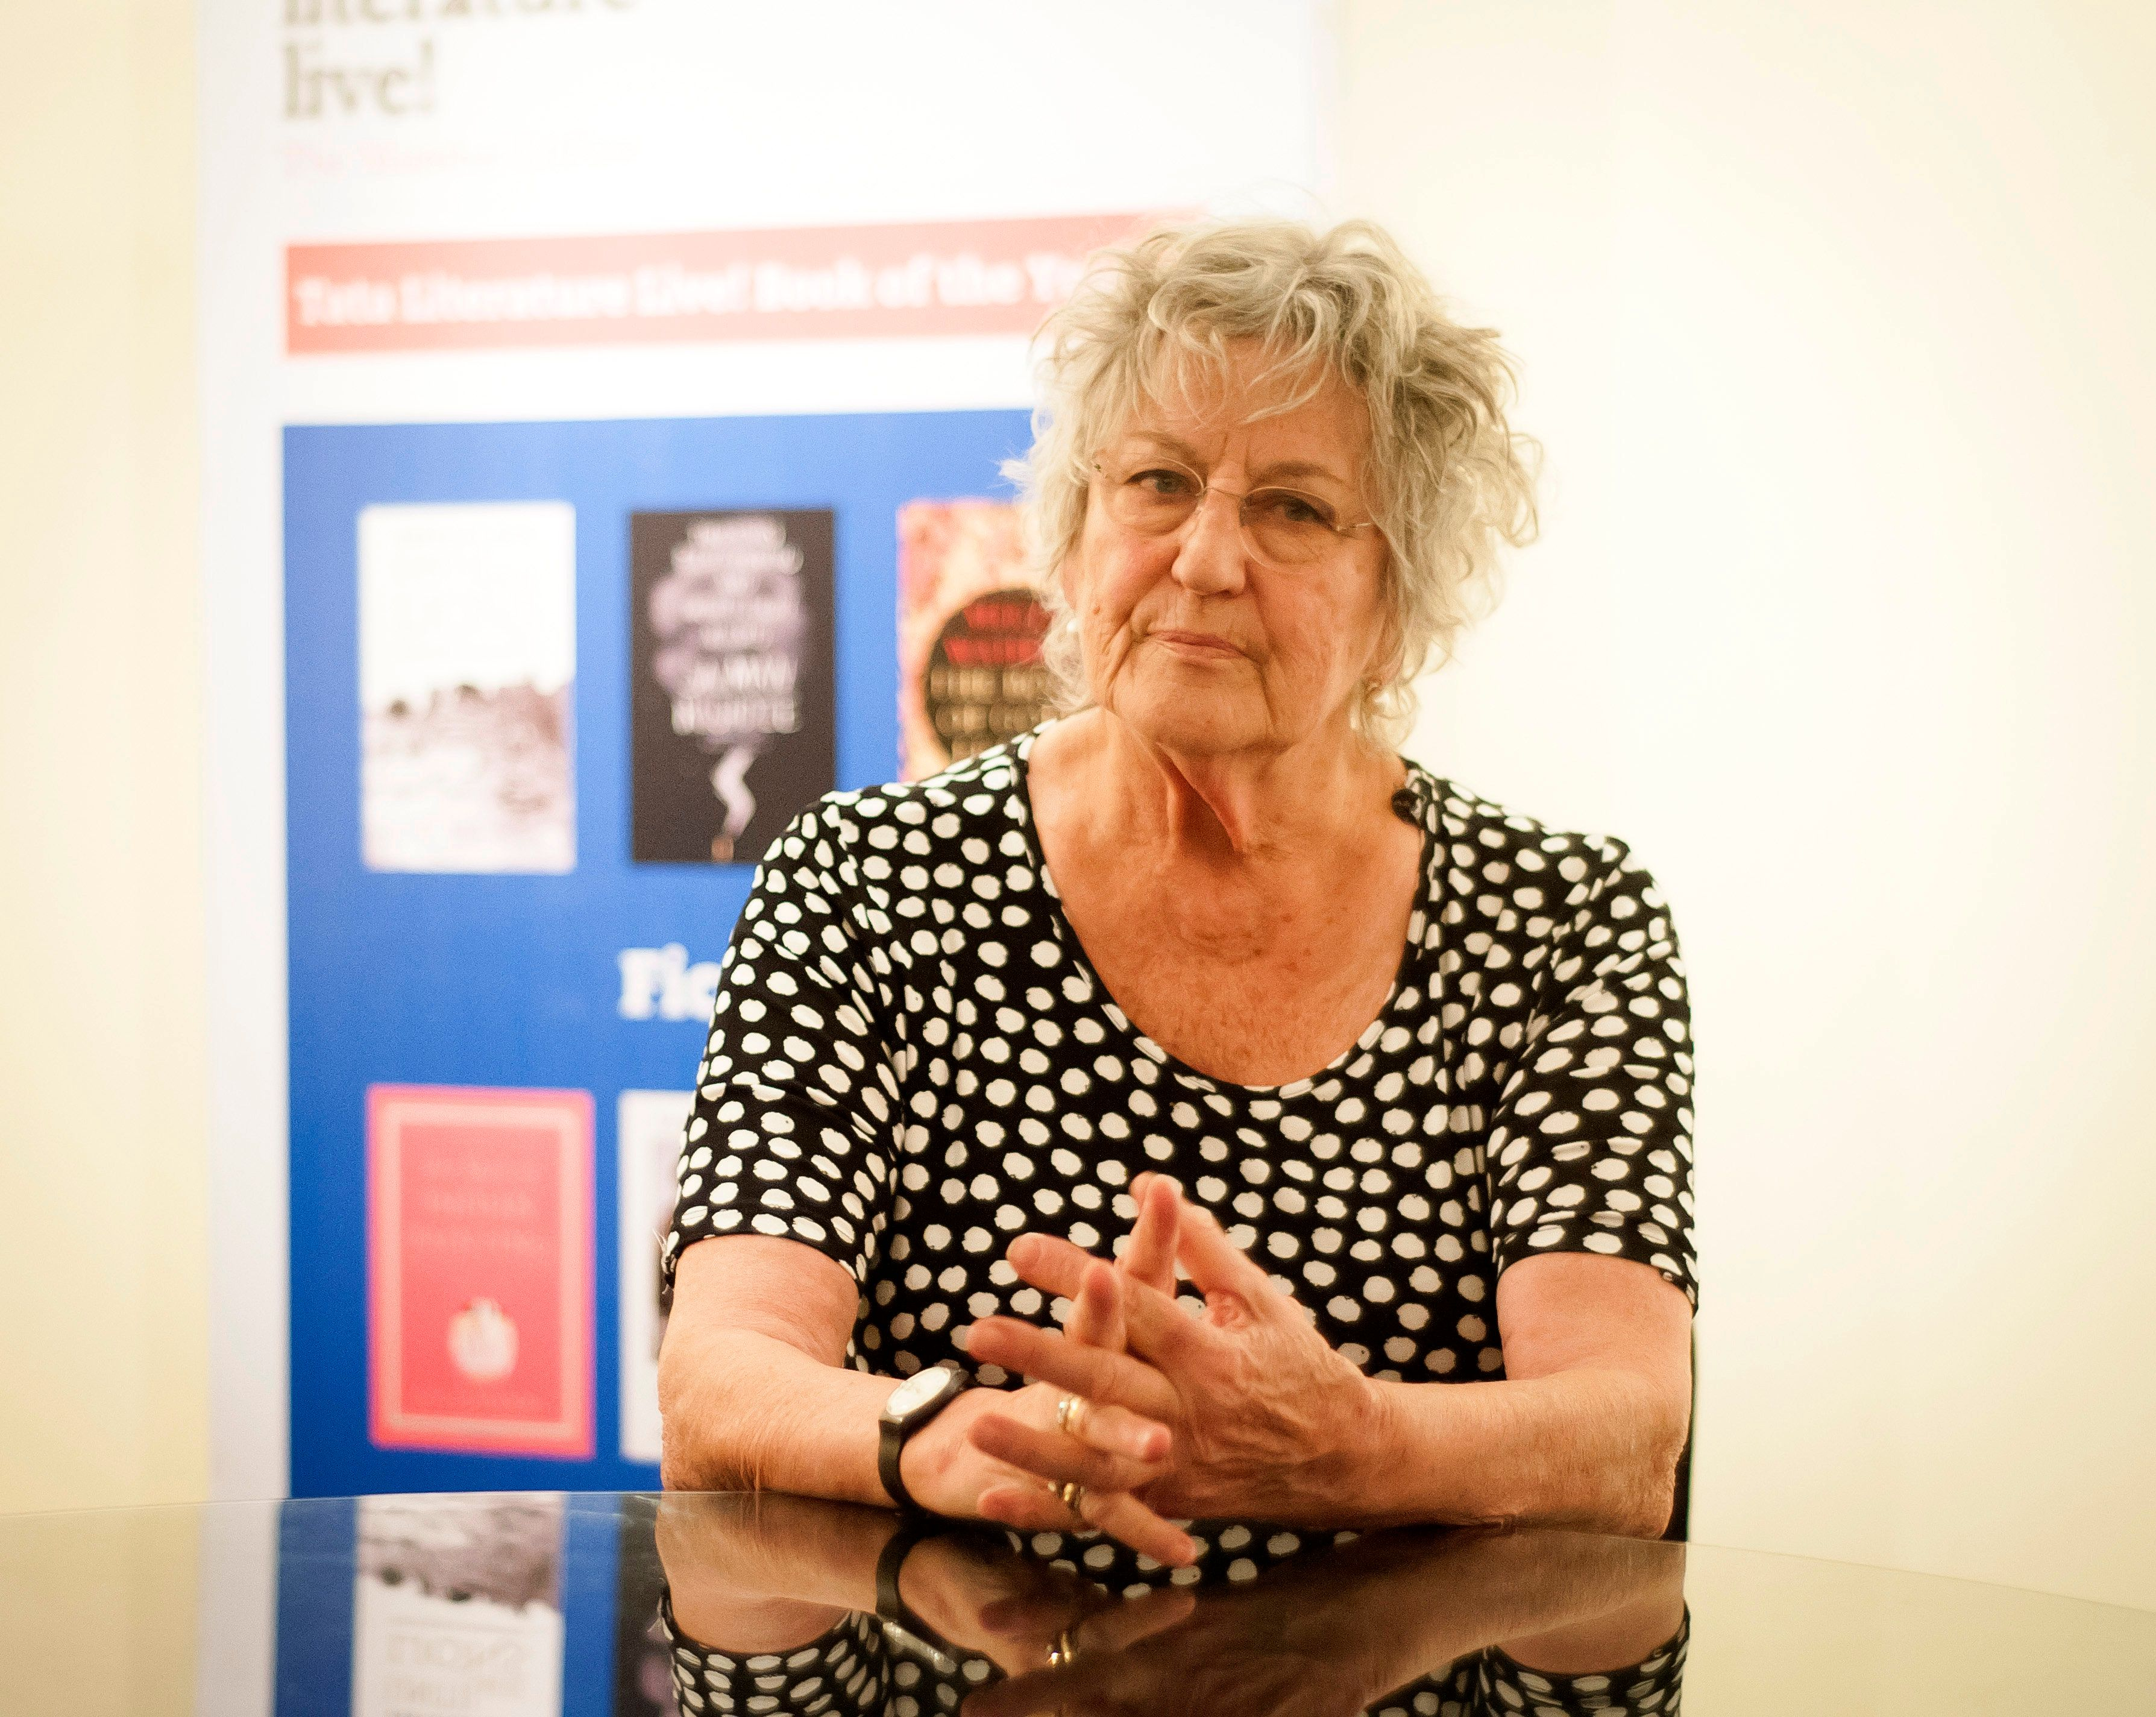 6 Controversial Talking Points From Germaine Greer's New Book, 'On